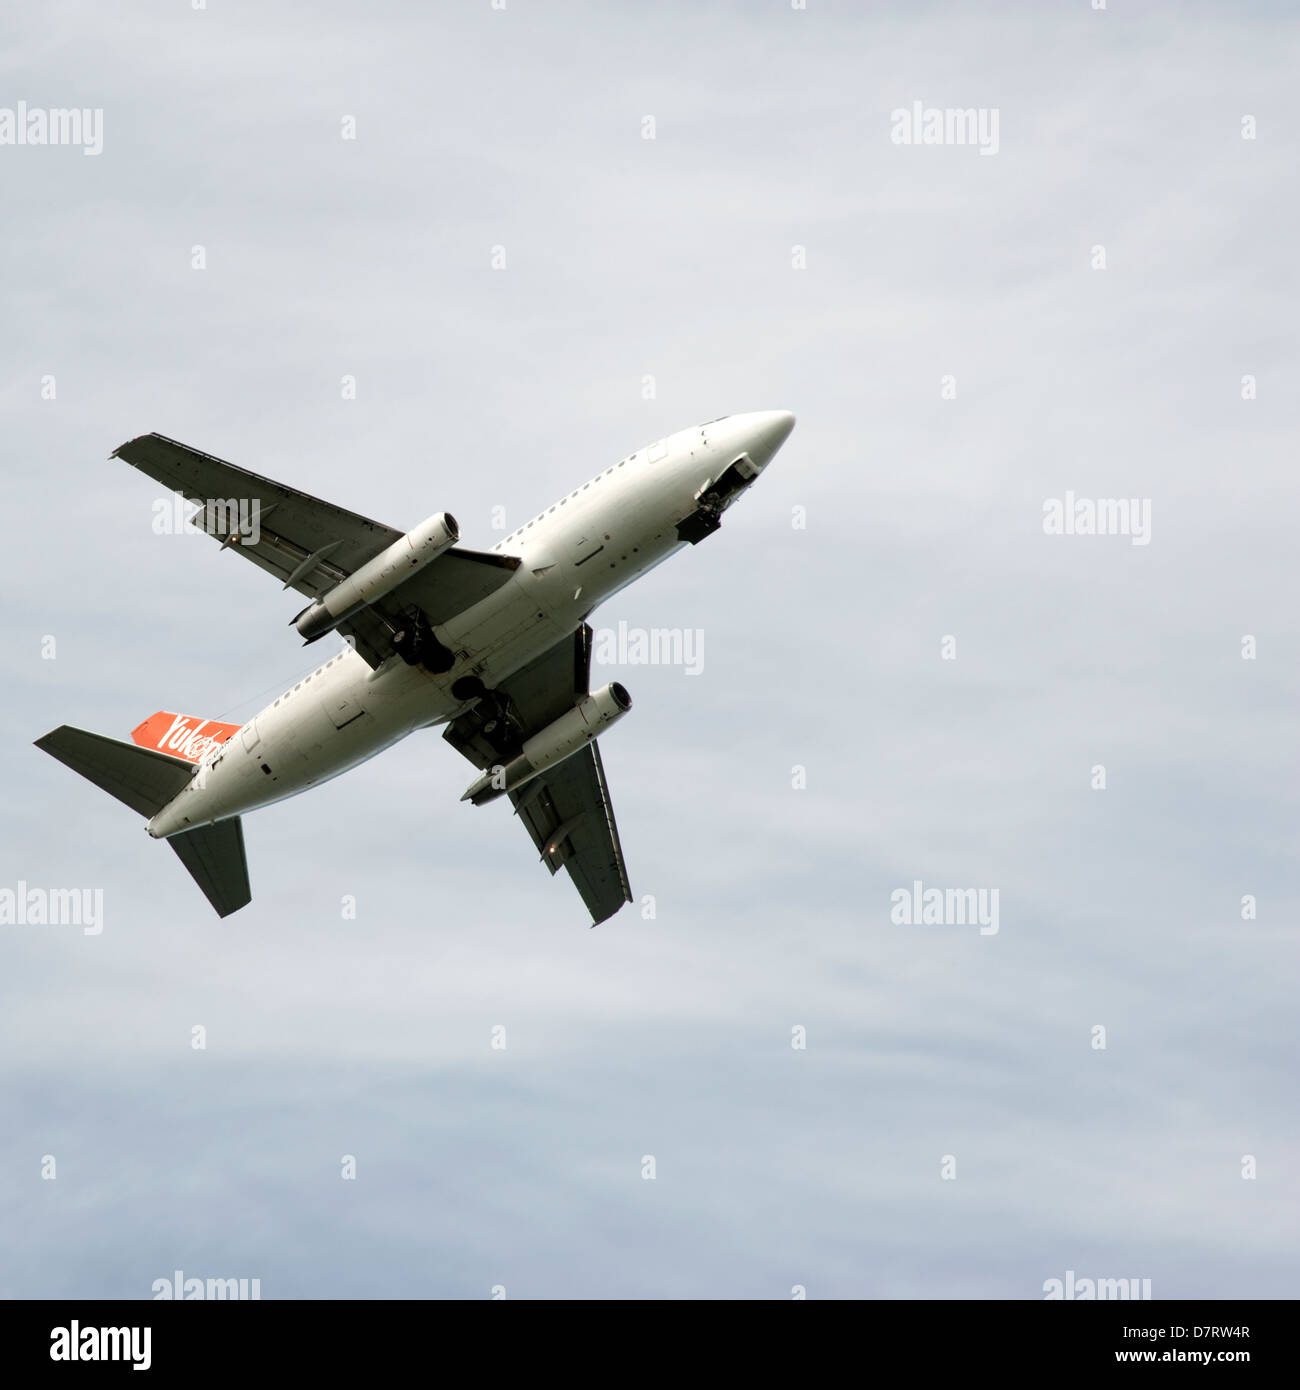 An airplane in the sky from Air North, Yukon, Canada airline - Stock Image